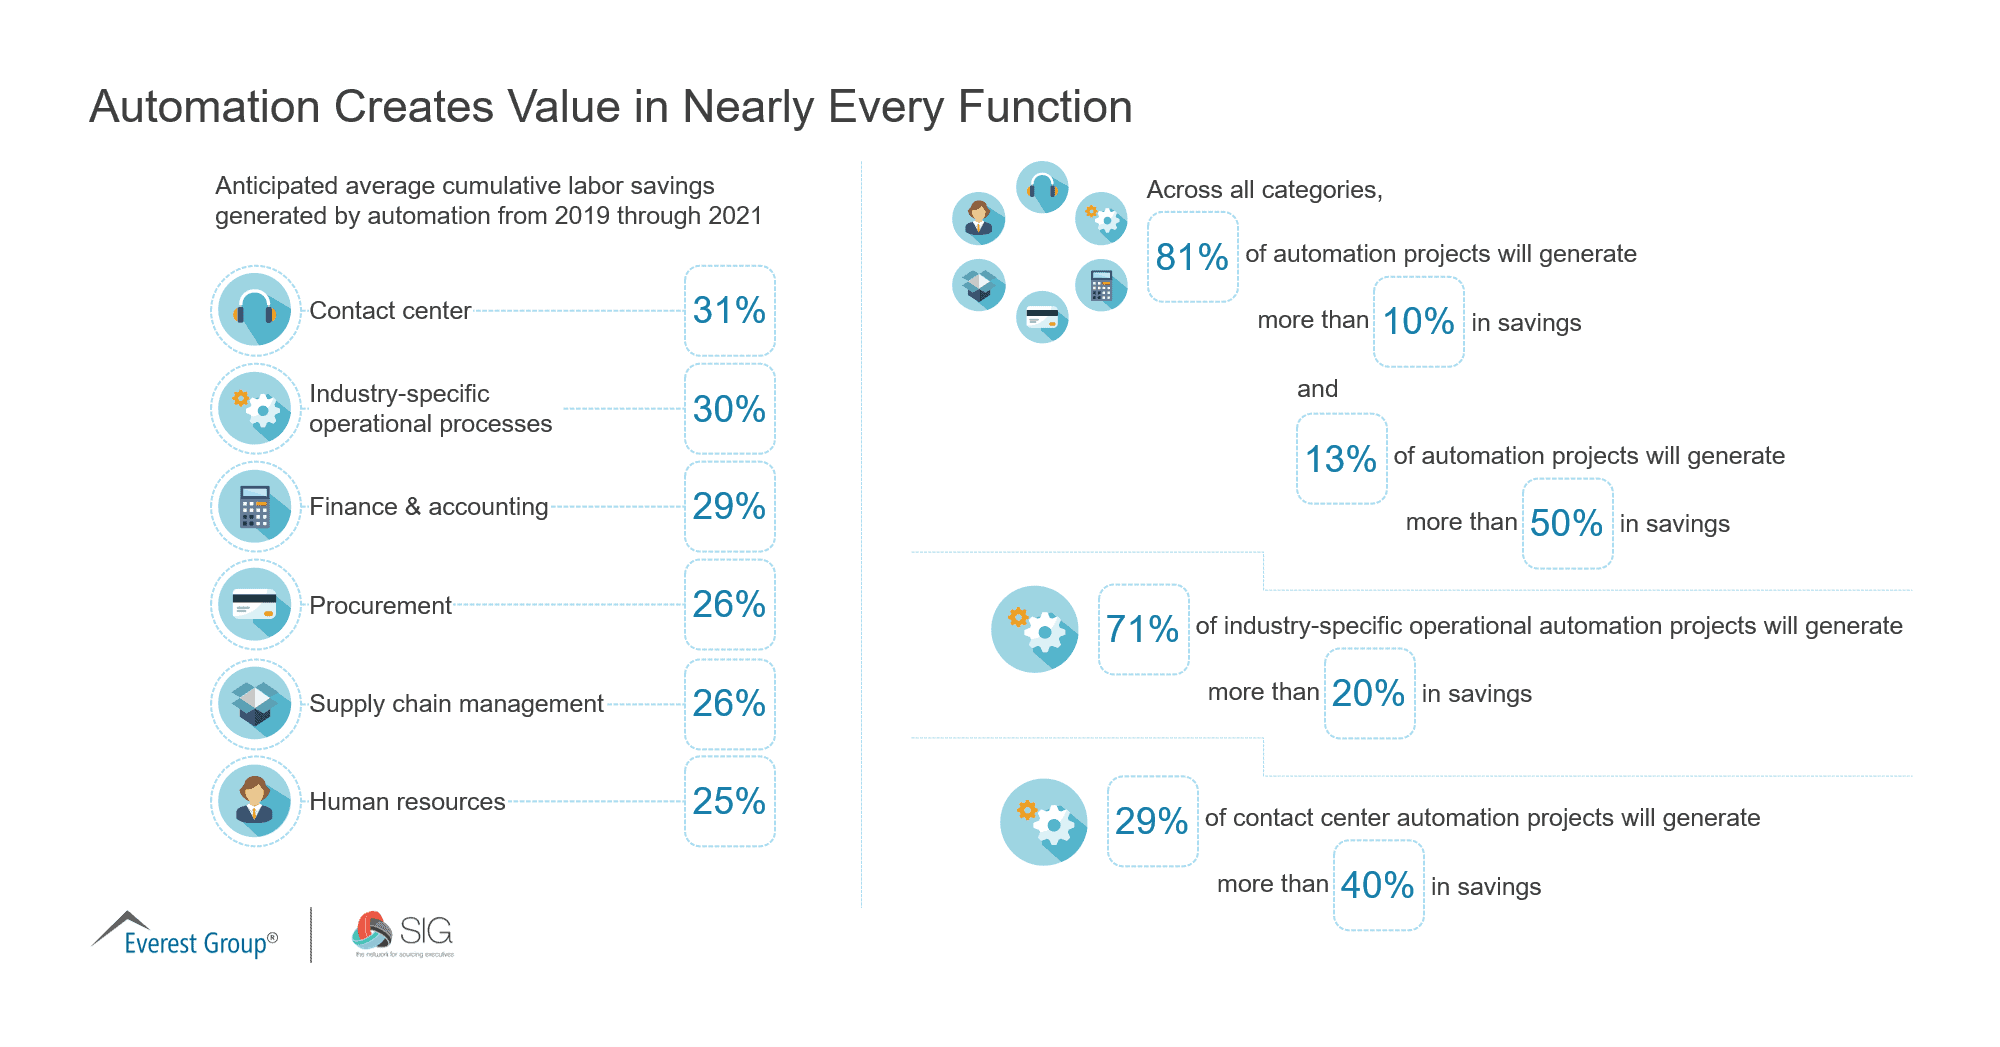 Automation Creates Value in Nearly Every Function SIG